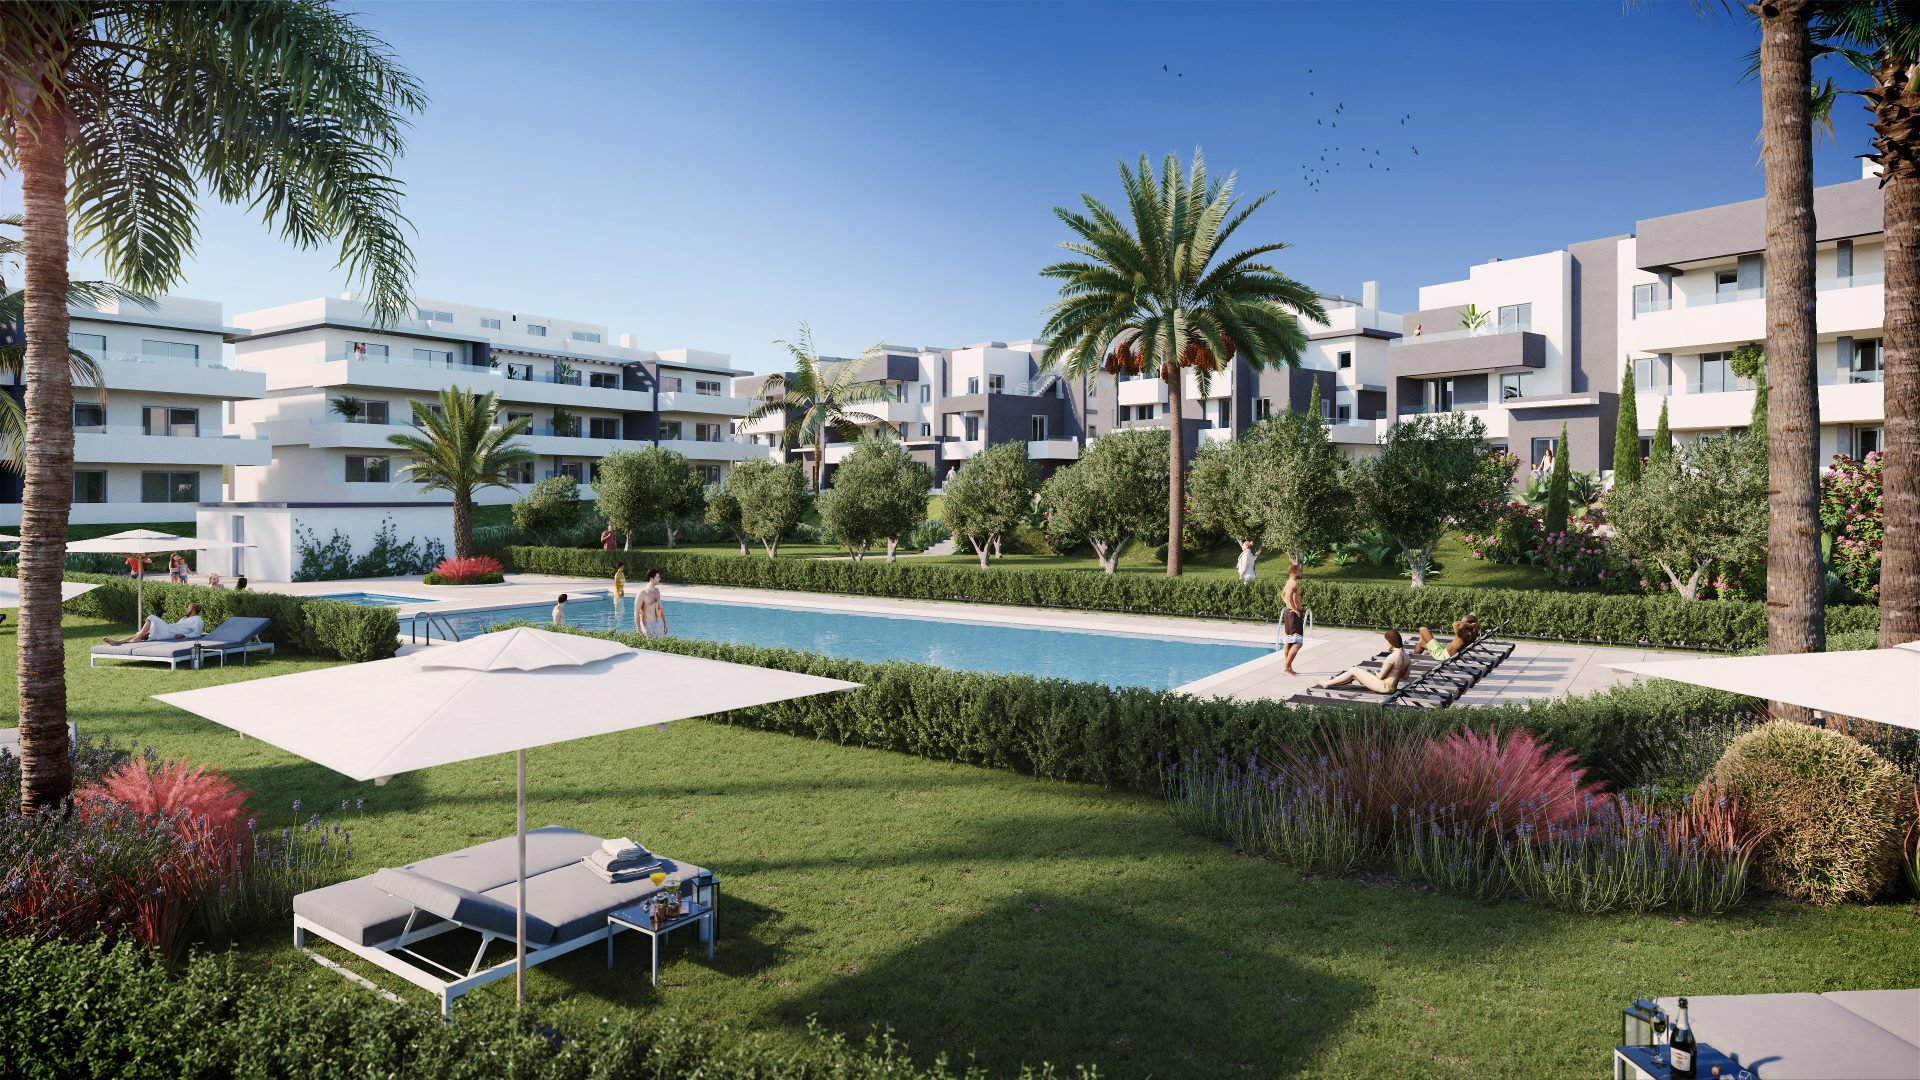 2-3 beds & penthouses next to the beach in Estepona